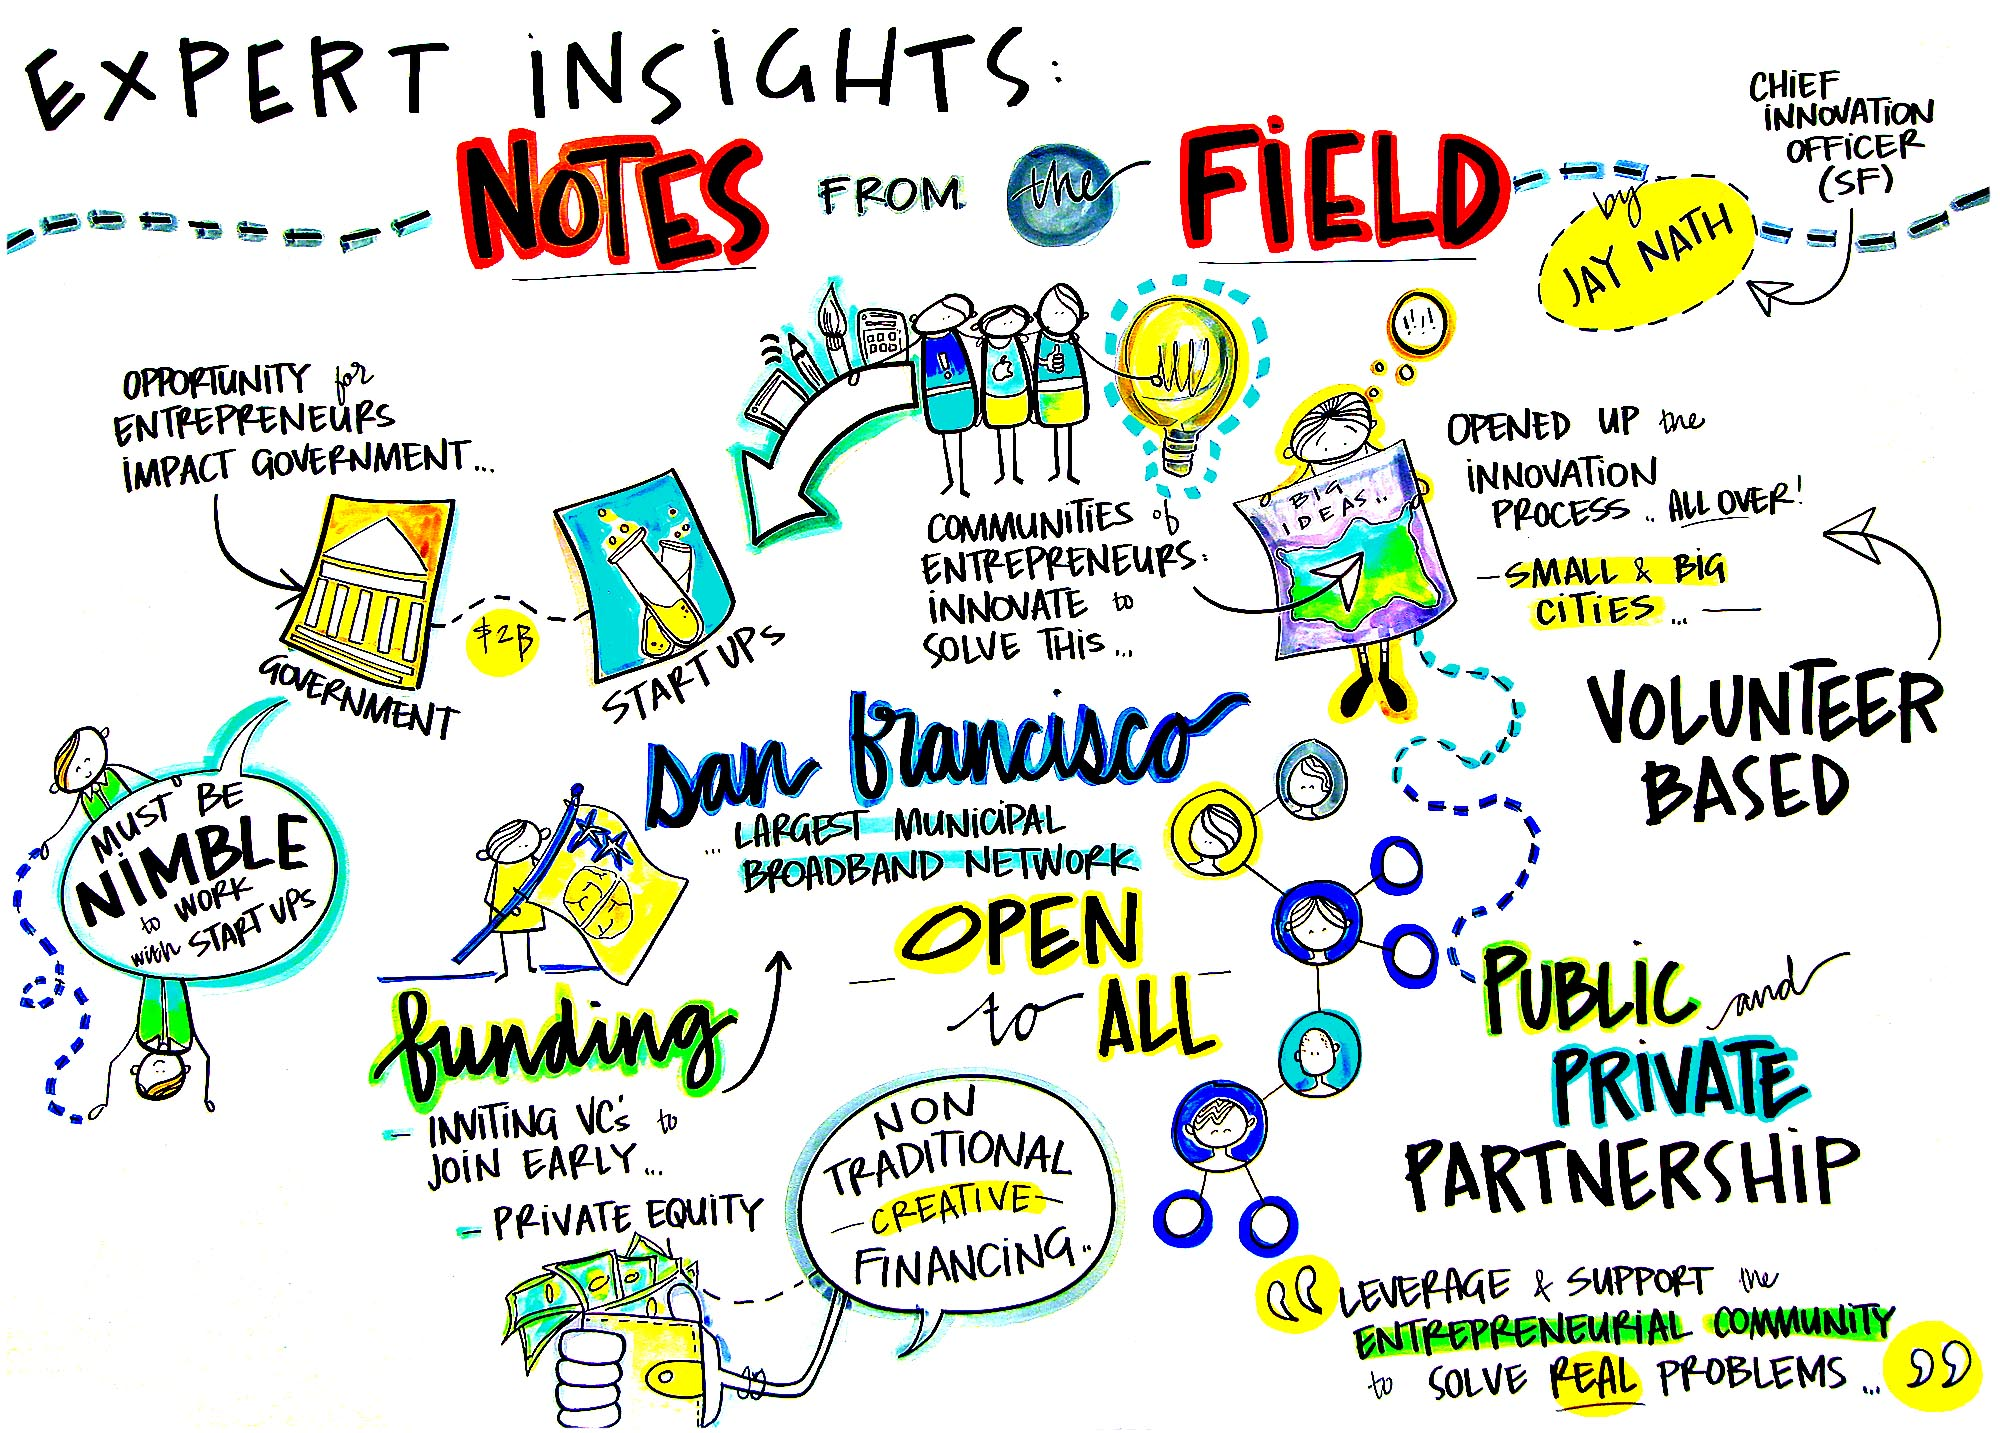 Expert Insights - John Lettieri - Scribing 2 | Mayors Conference 2017